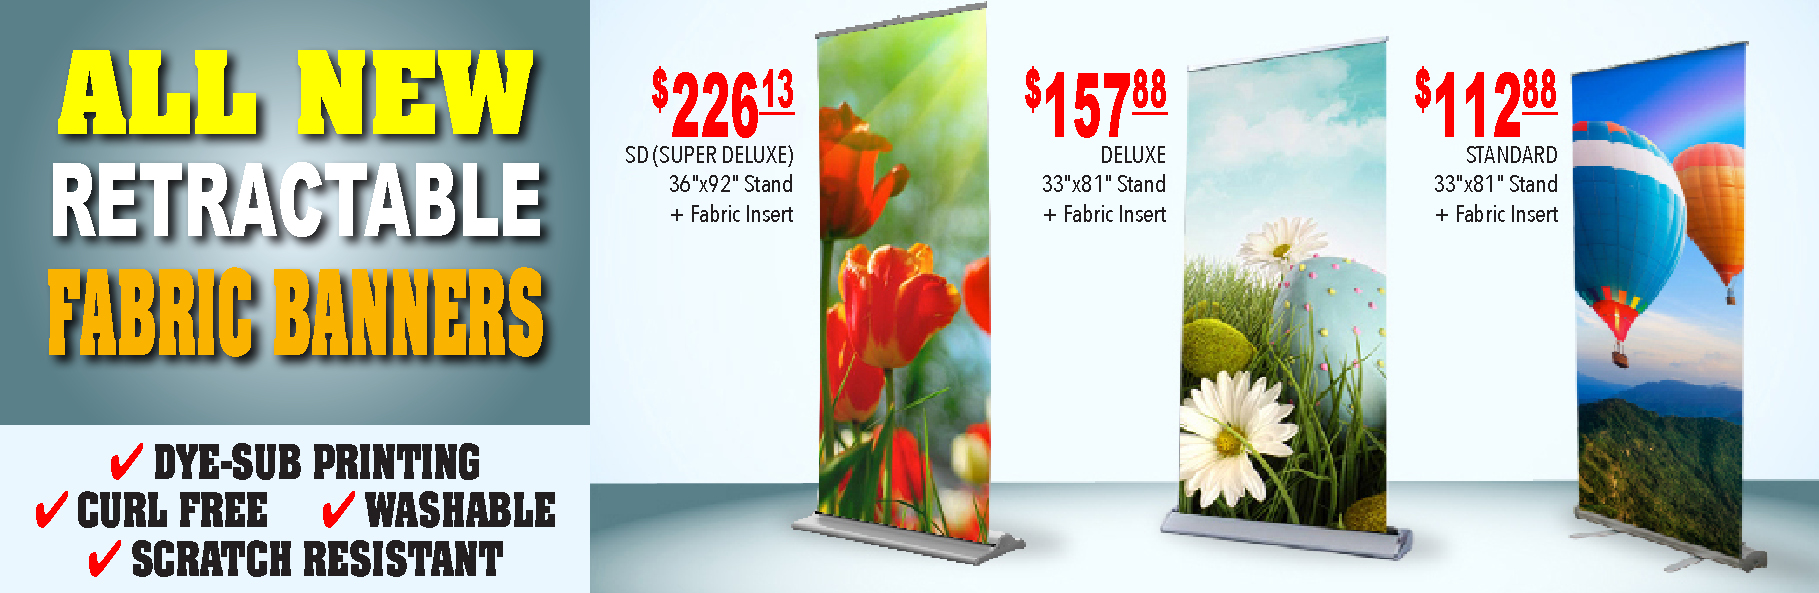 Retractable Banners - new site